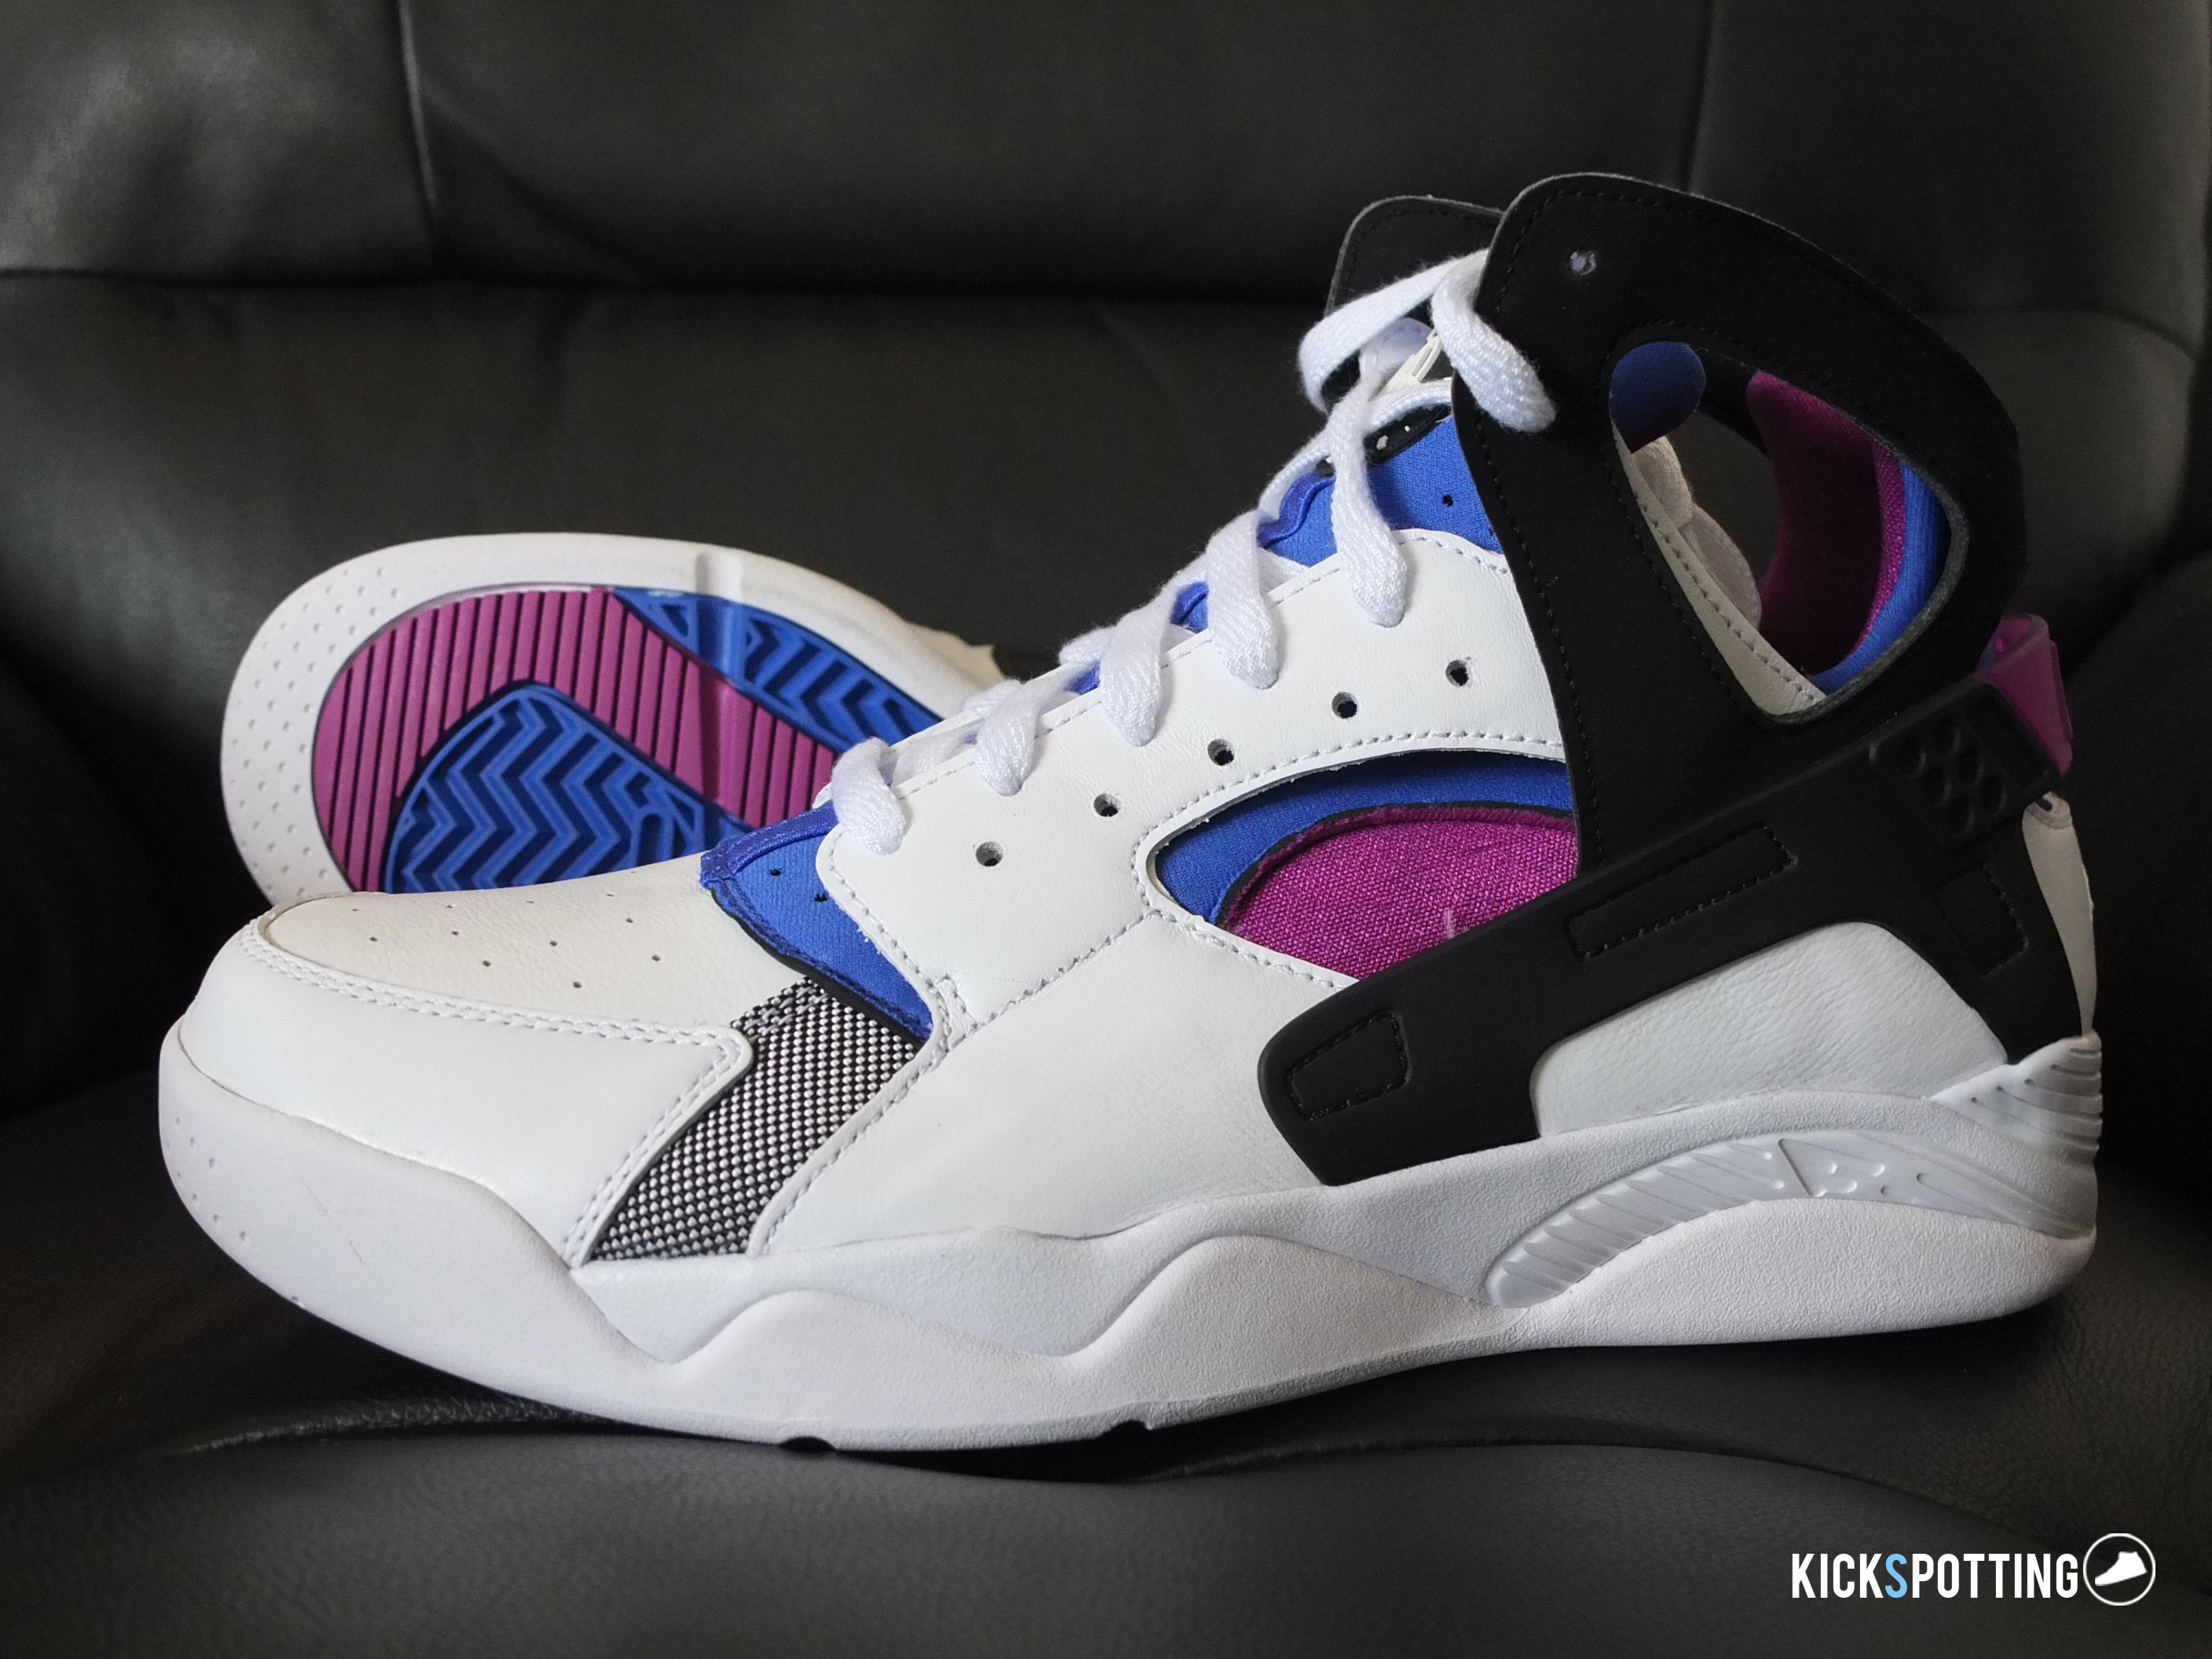 fit of nike huarache